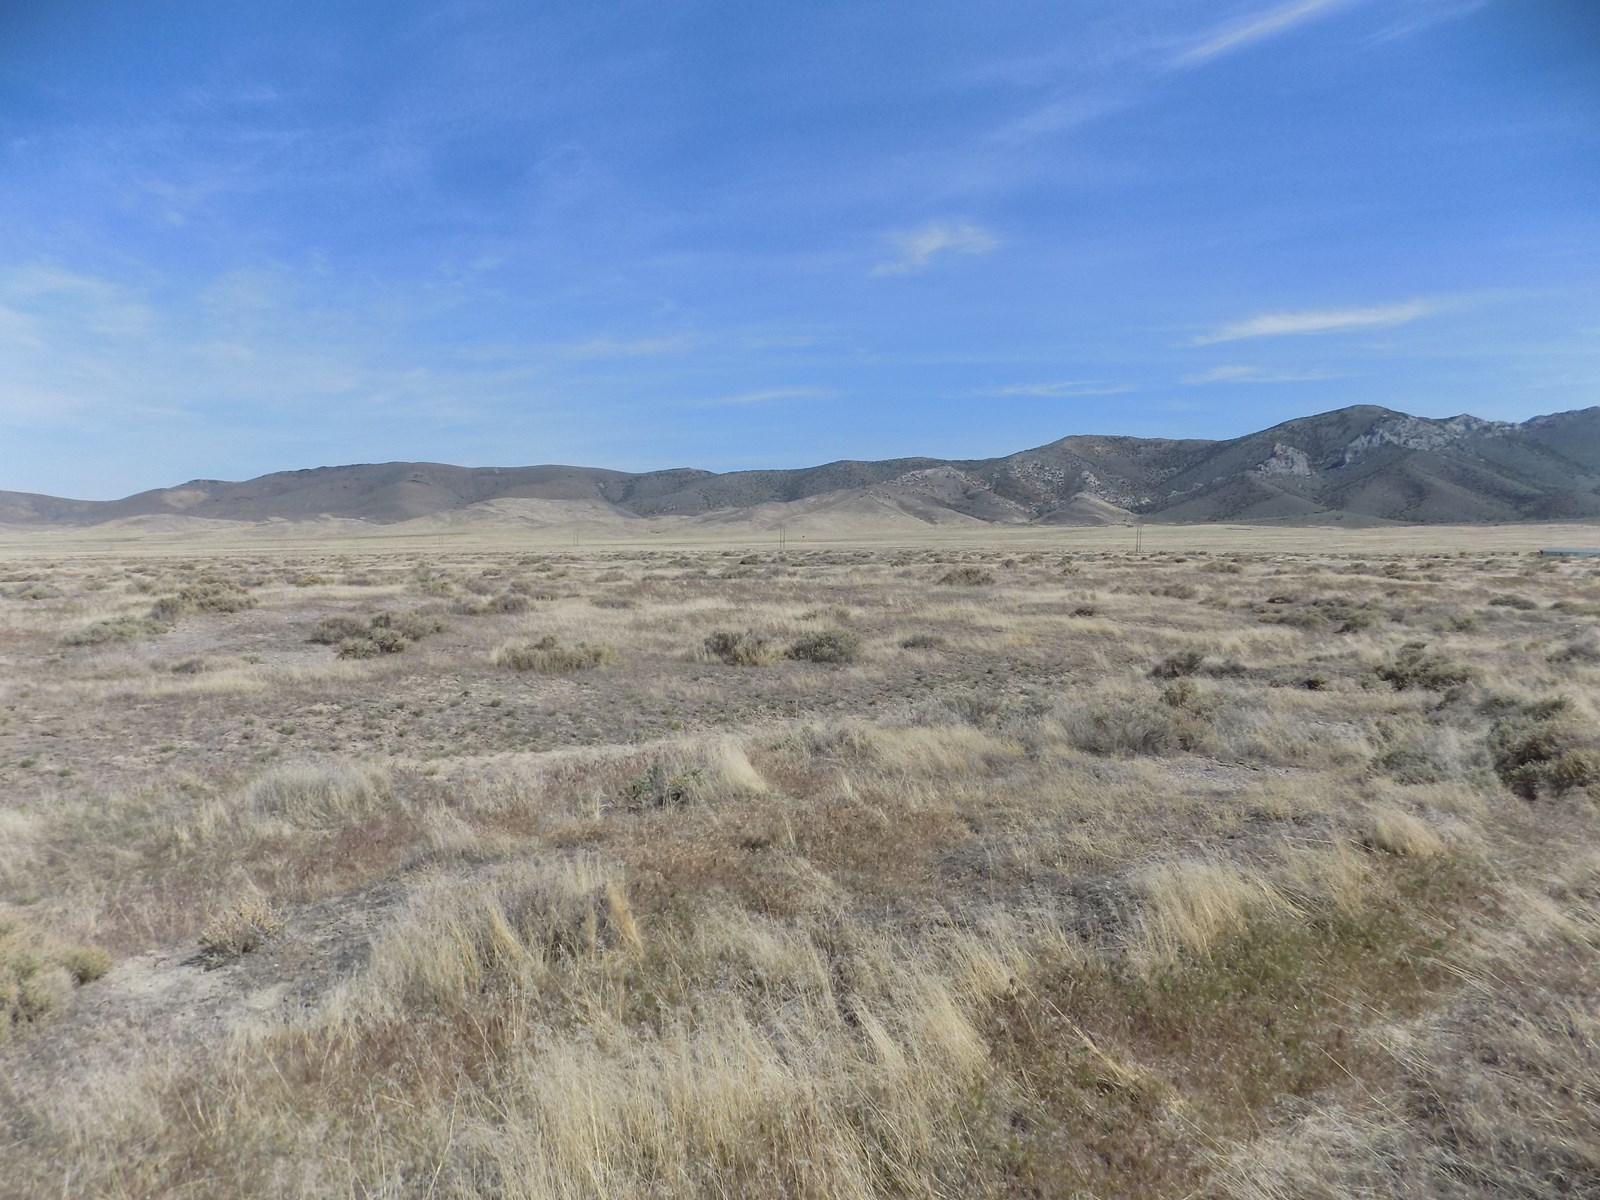 Land for Sale with views of the Humboldt Mountains